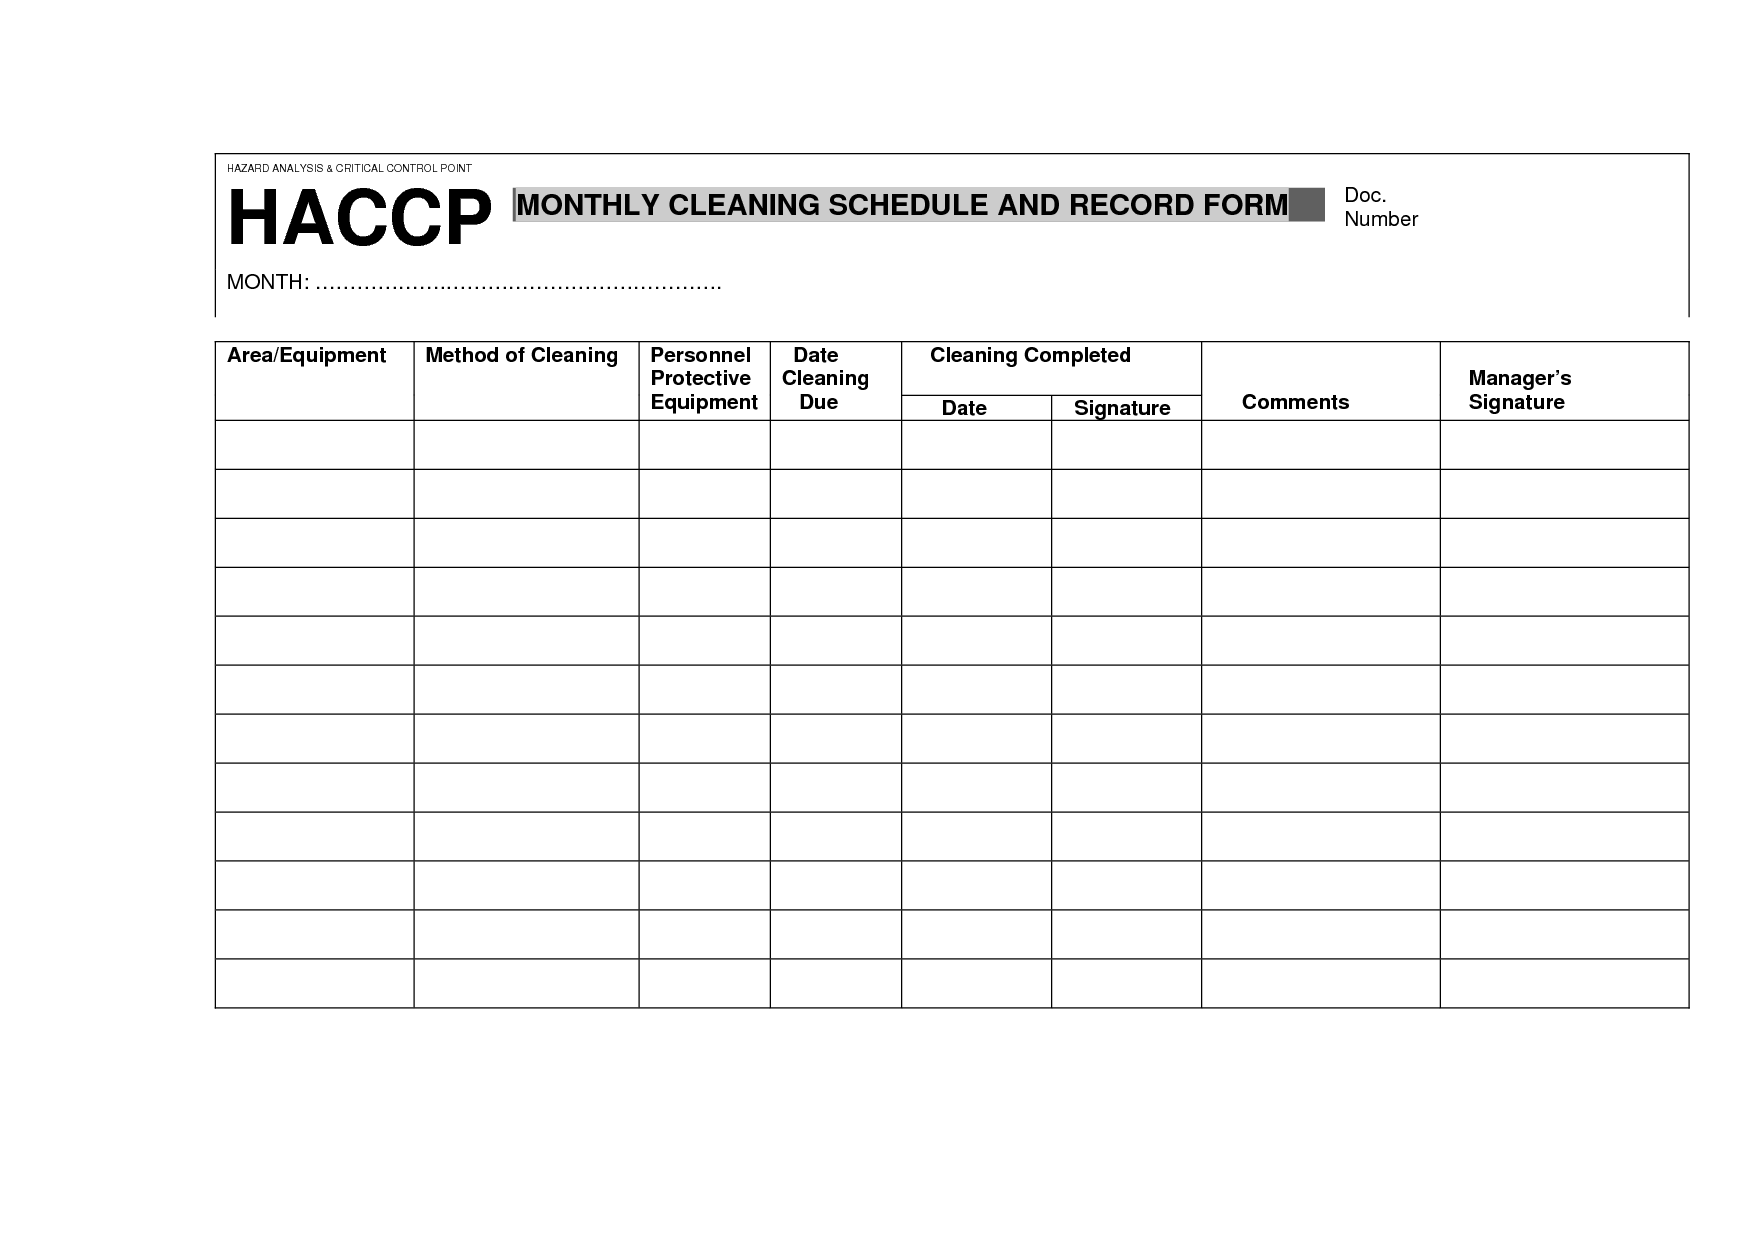 Haccp Cleaning Schedule And Record Form Methi Pinterest